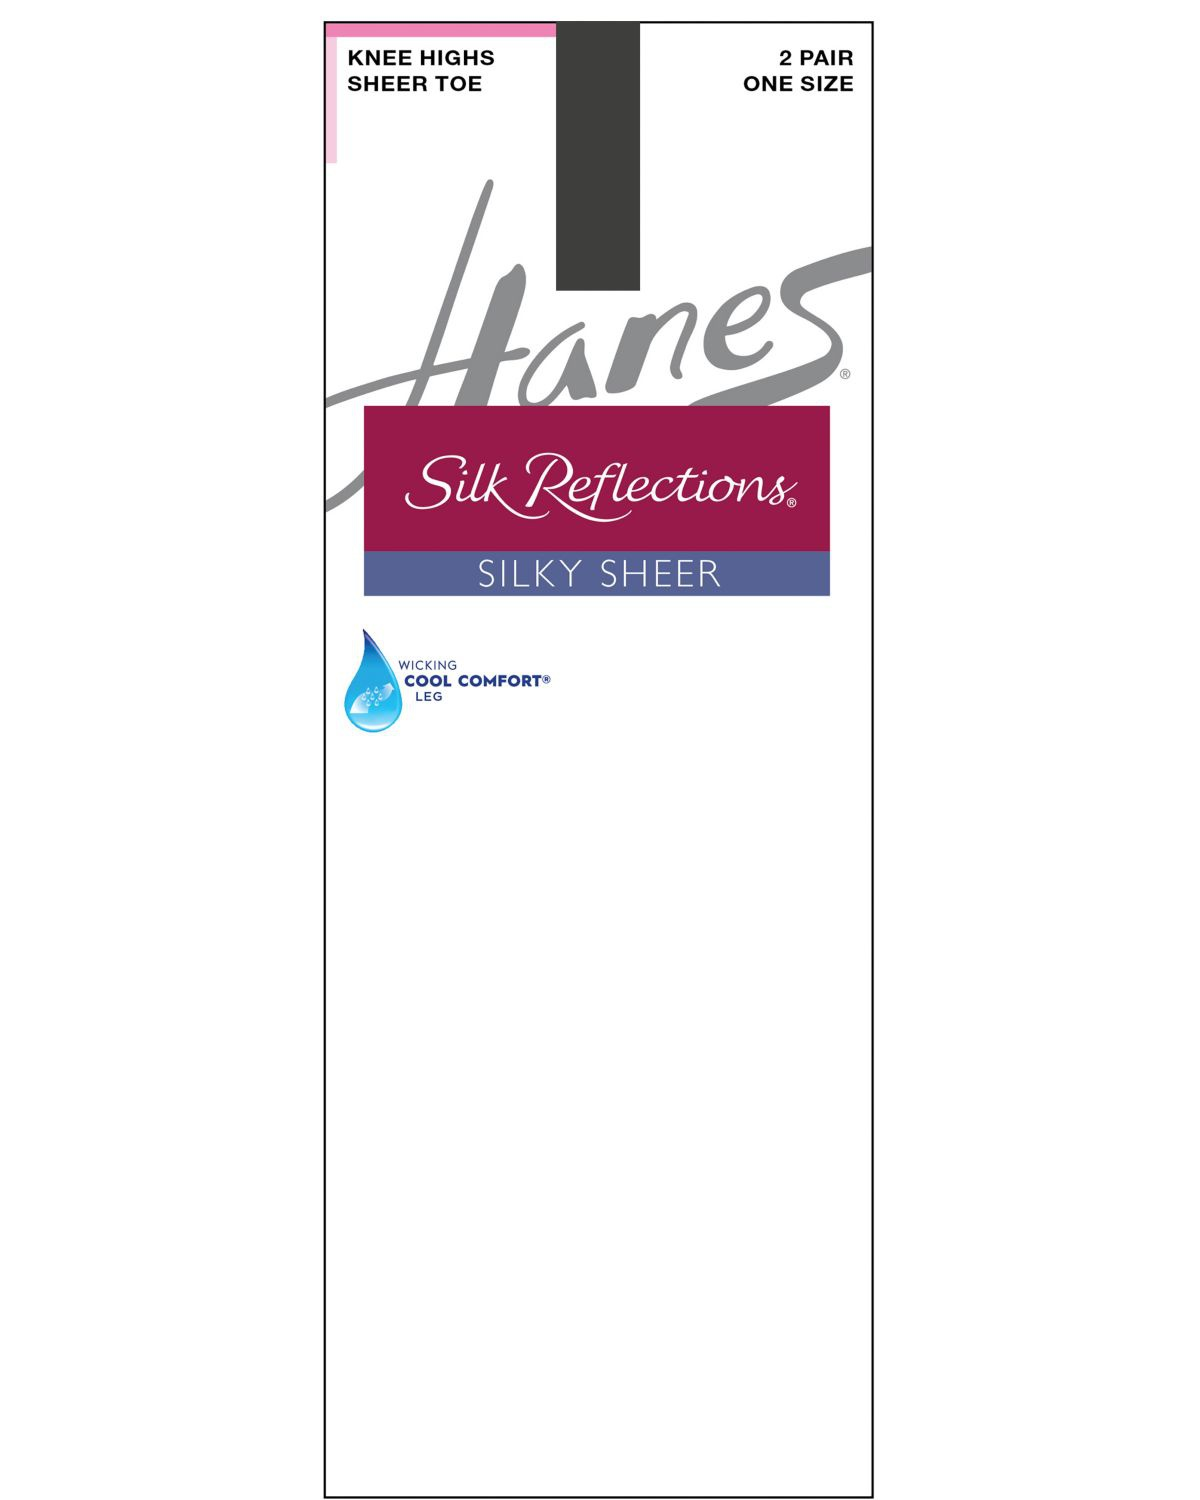 'Hanes 00725 Women's Silk Reflections Silky Sheer Knee Highs 2 Pack'